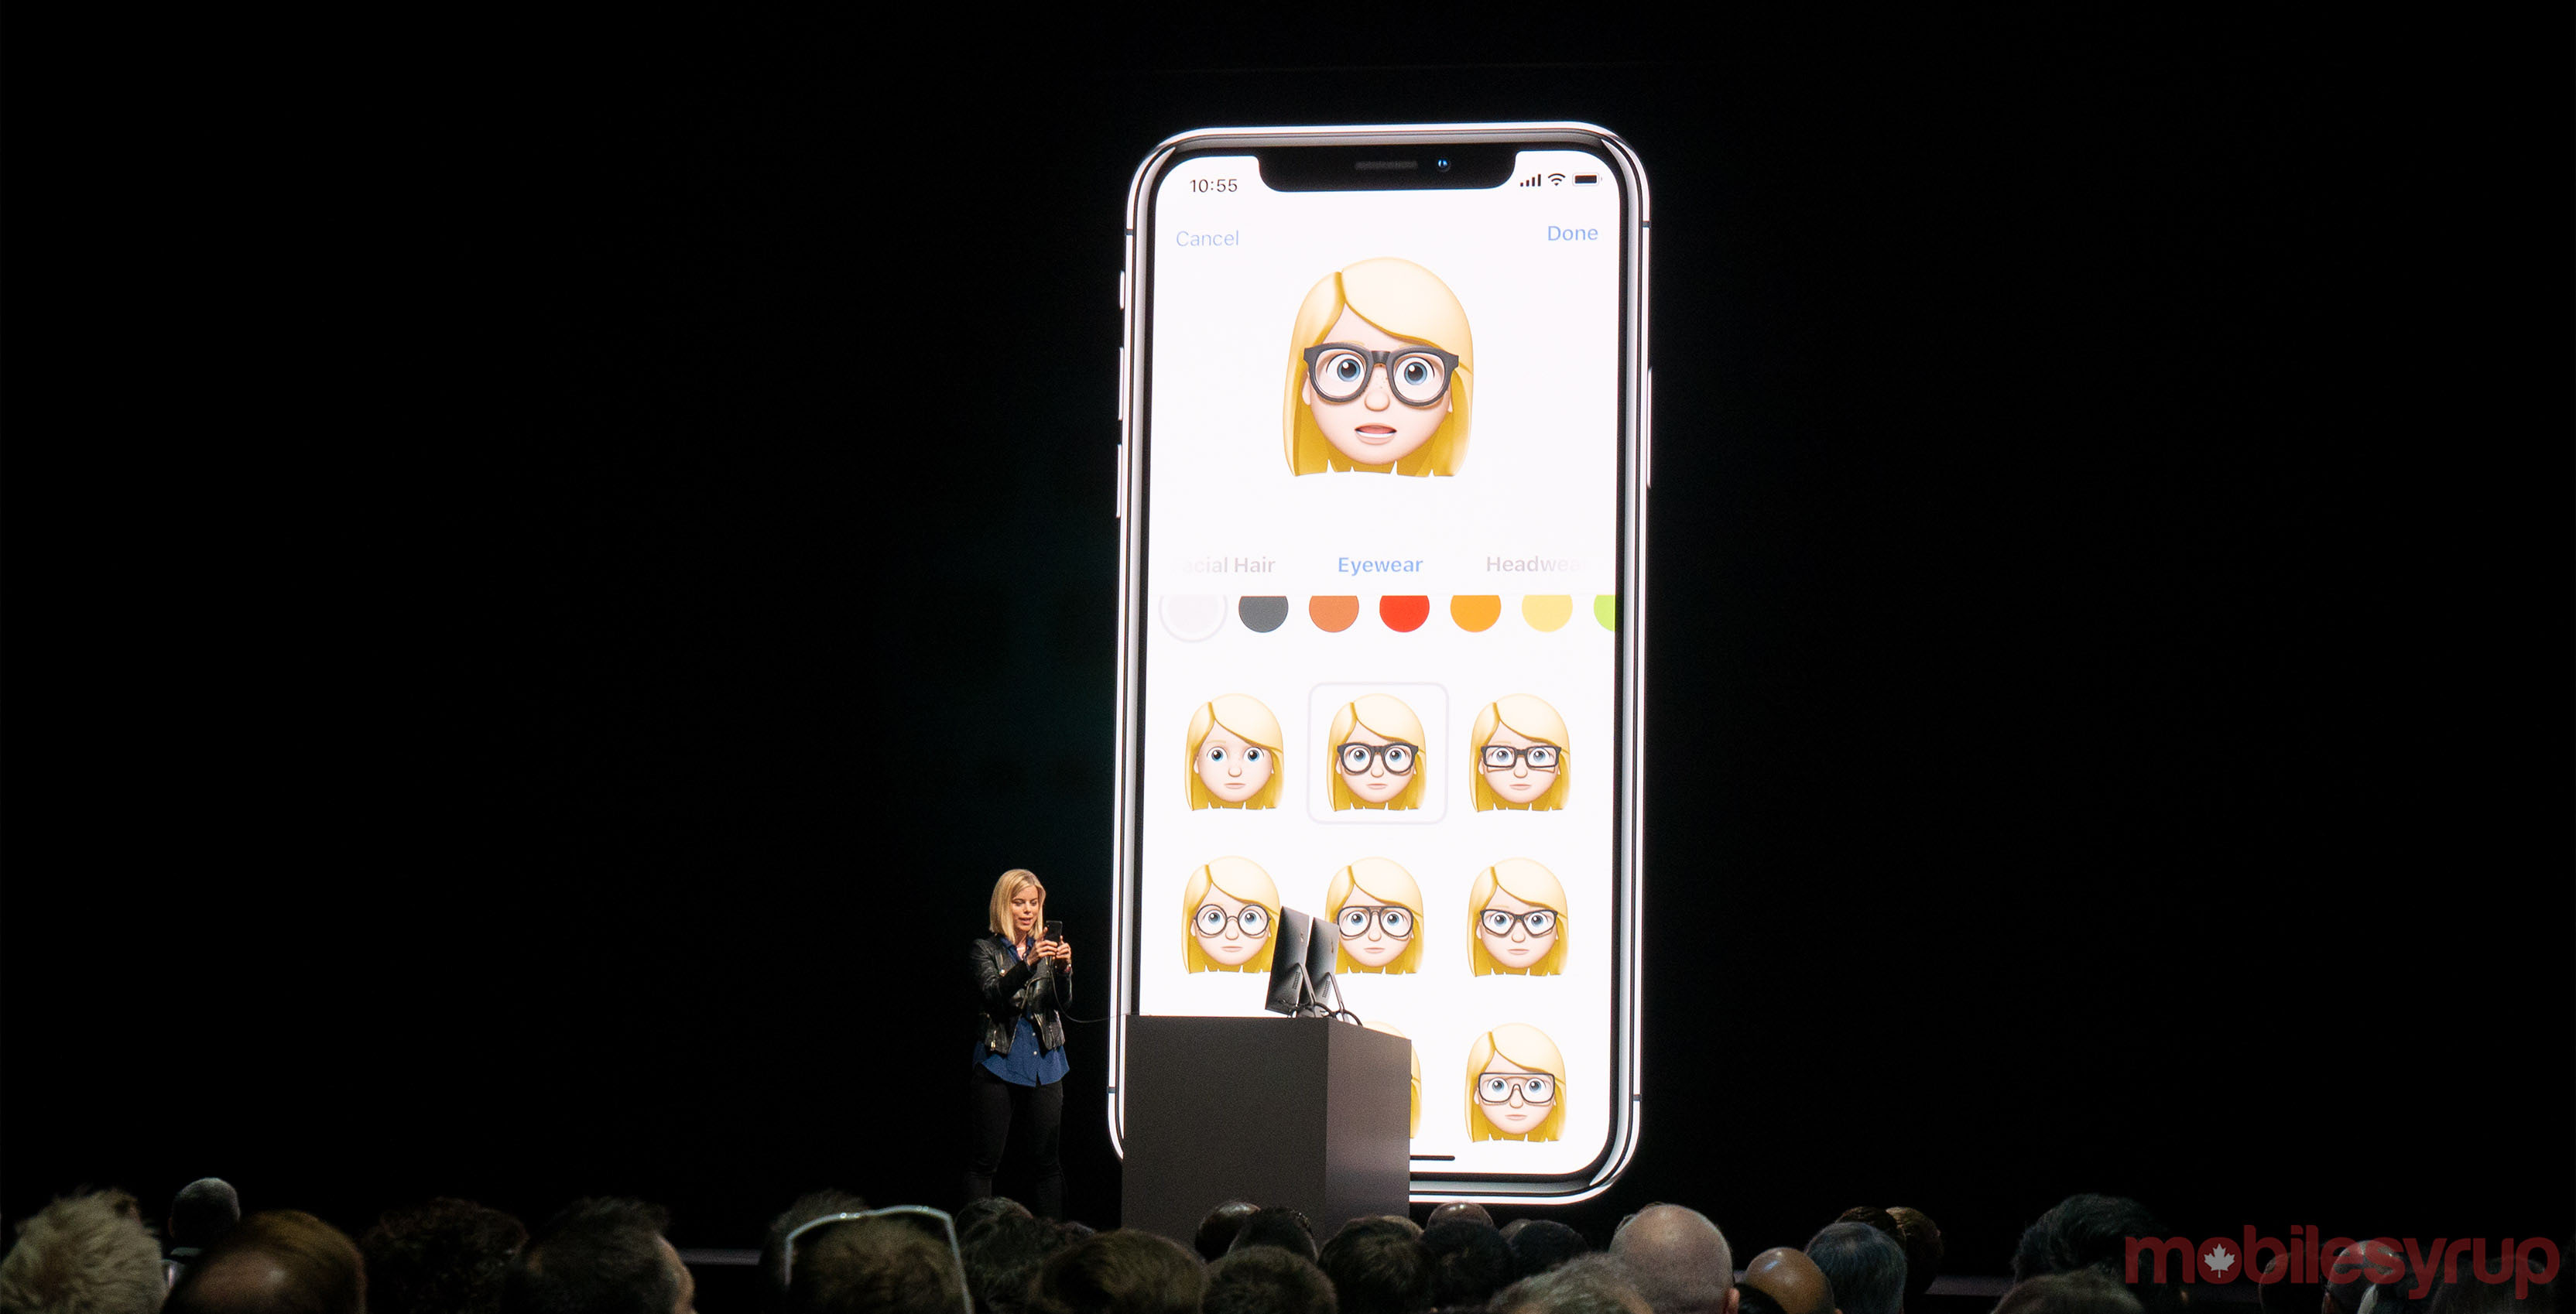 Apple lets Siri chat to other apps